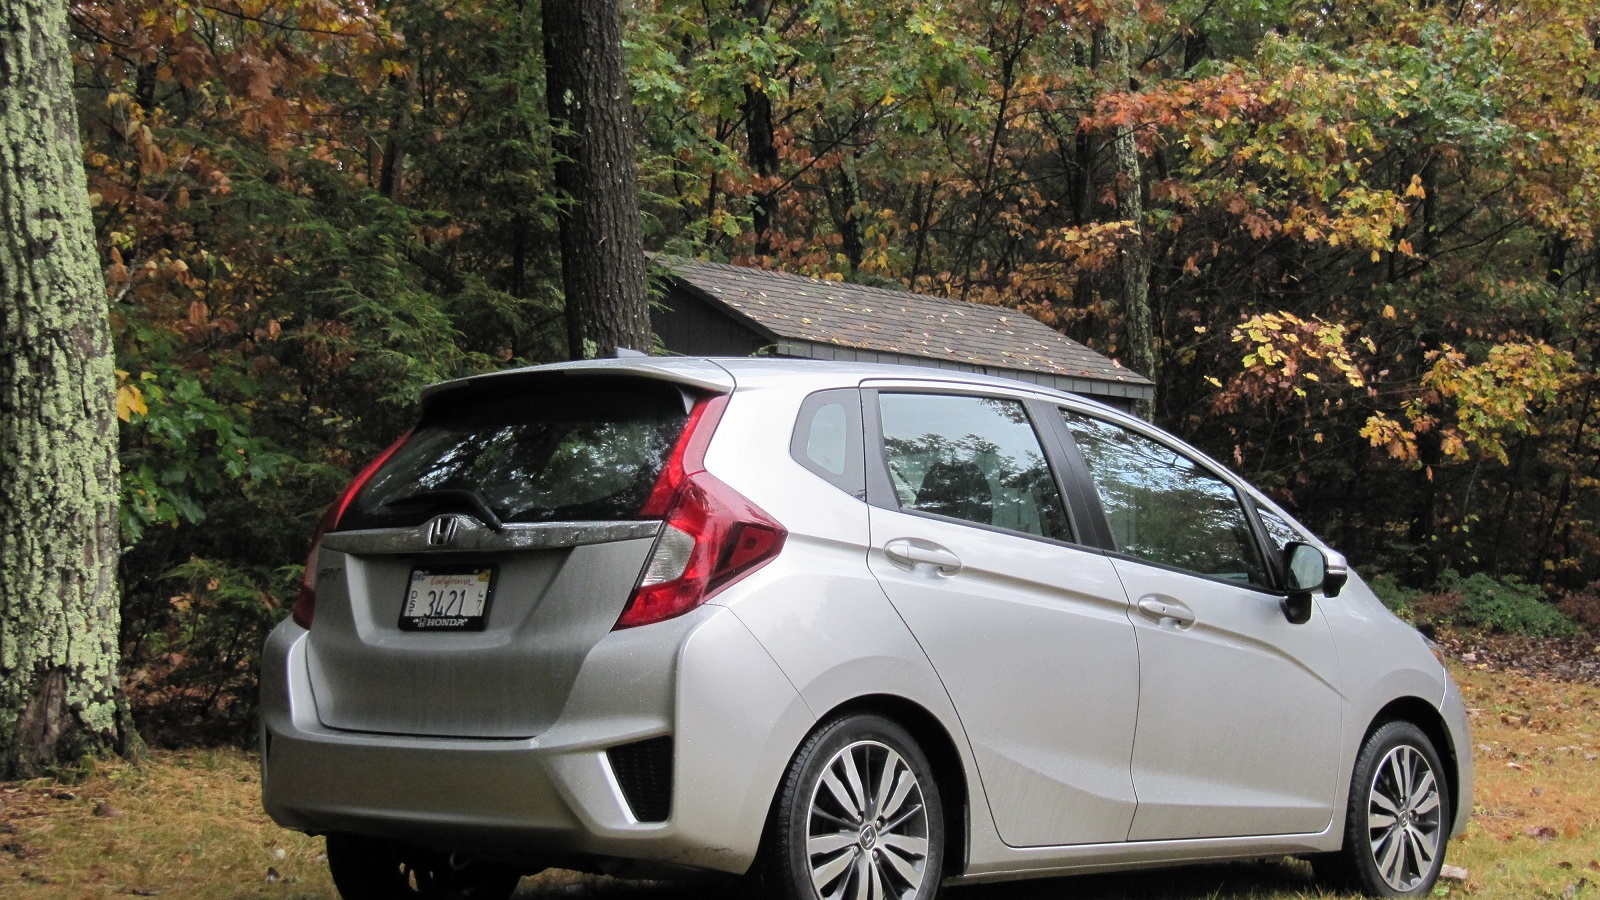 2015 Honda Fit EX-L Navi, Catskill Mountains, NY, Oct 2014